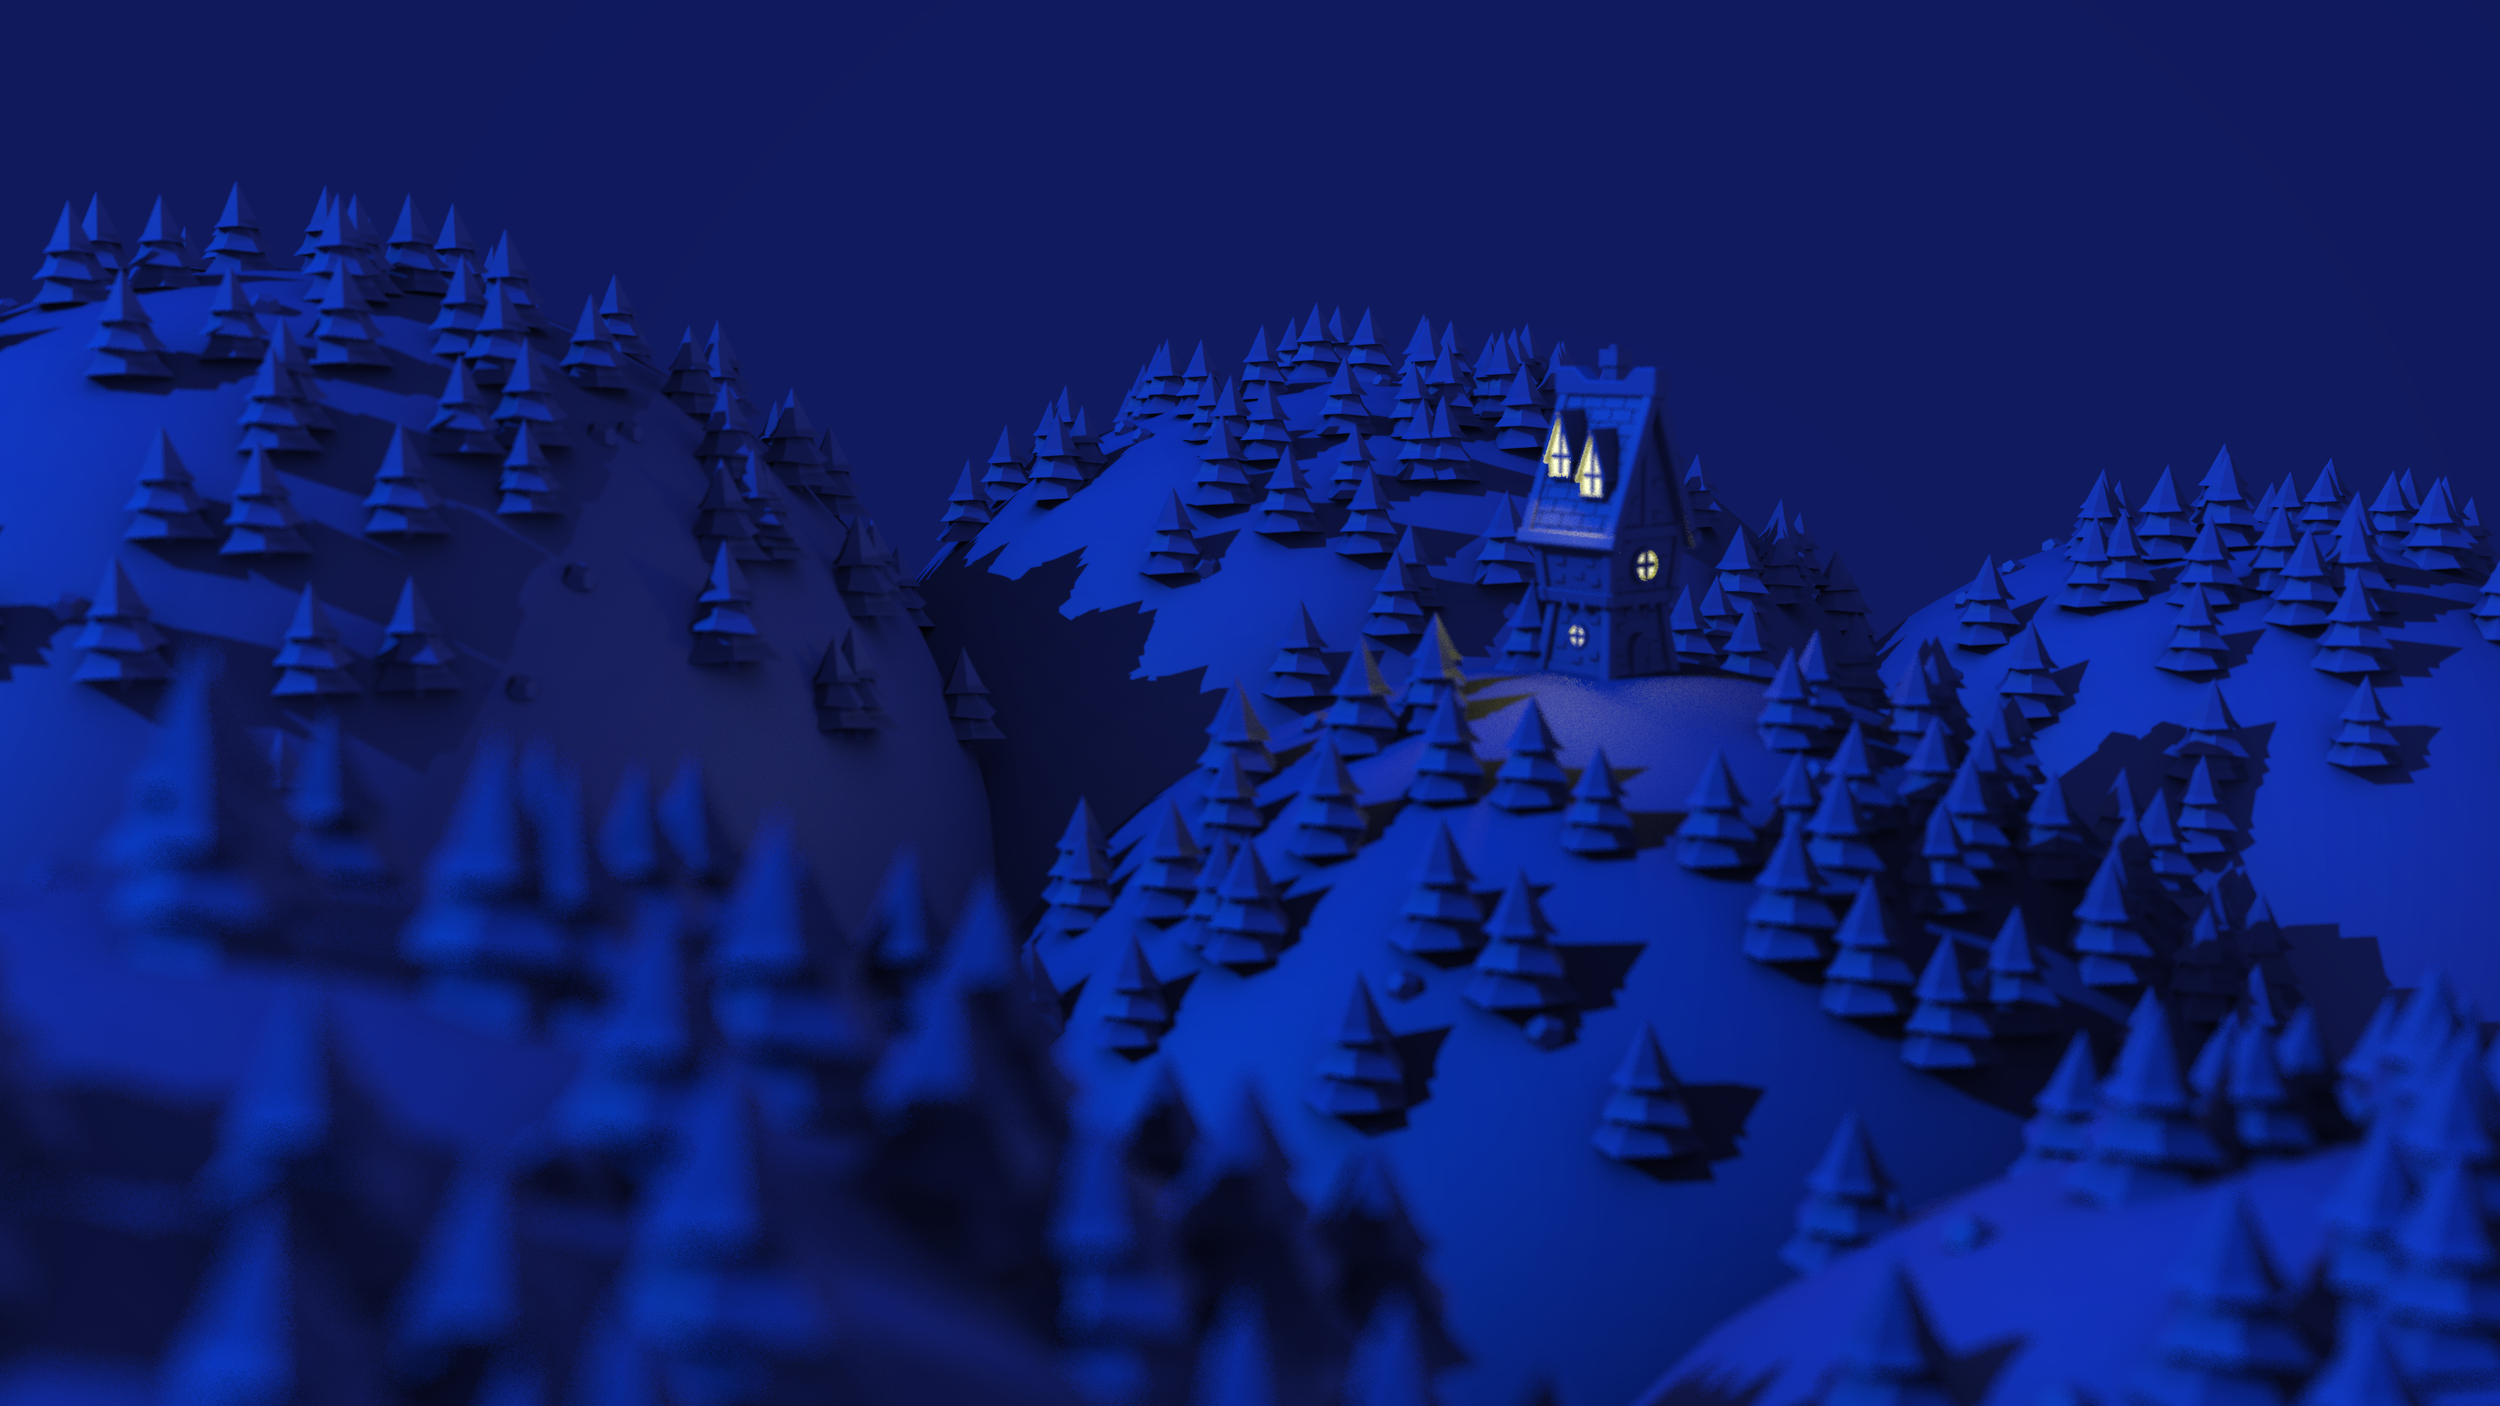 Then just for fun I made a nighttime variant